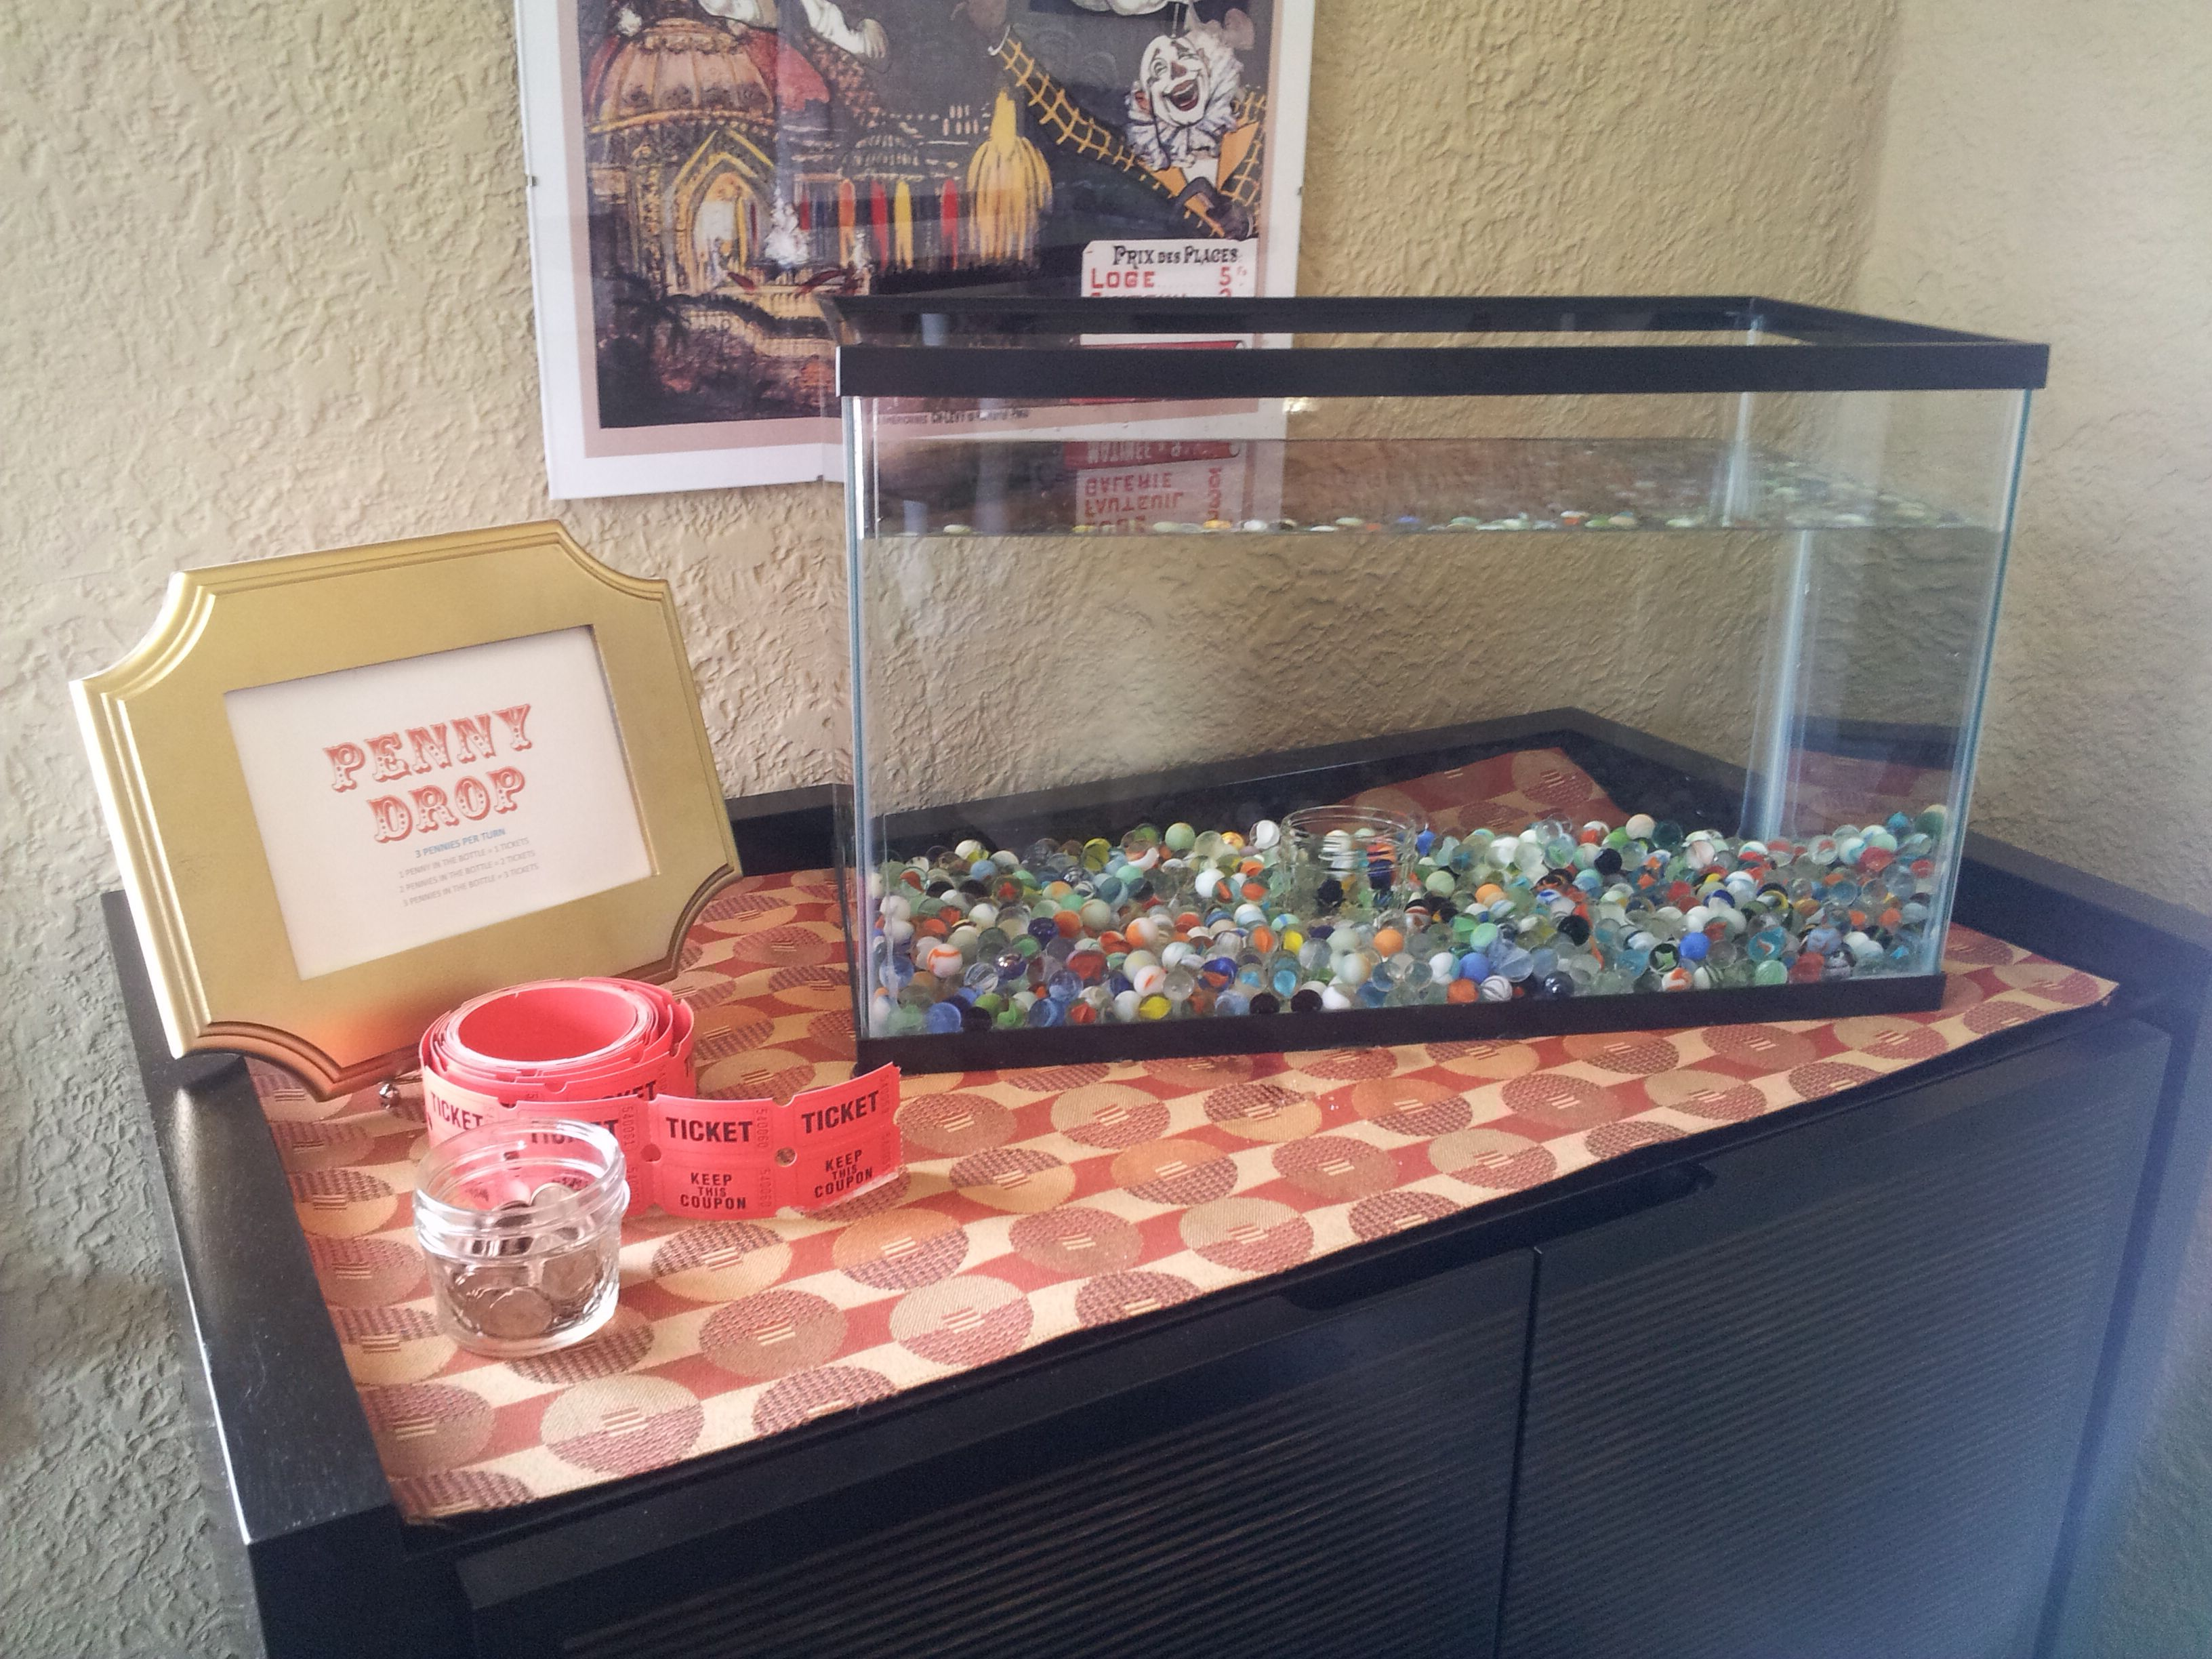 Penny drop game fall festival pinterest drop gaming for Fish tank game